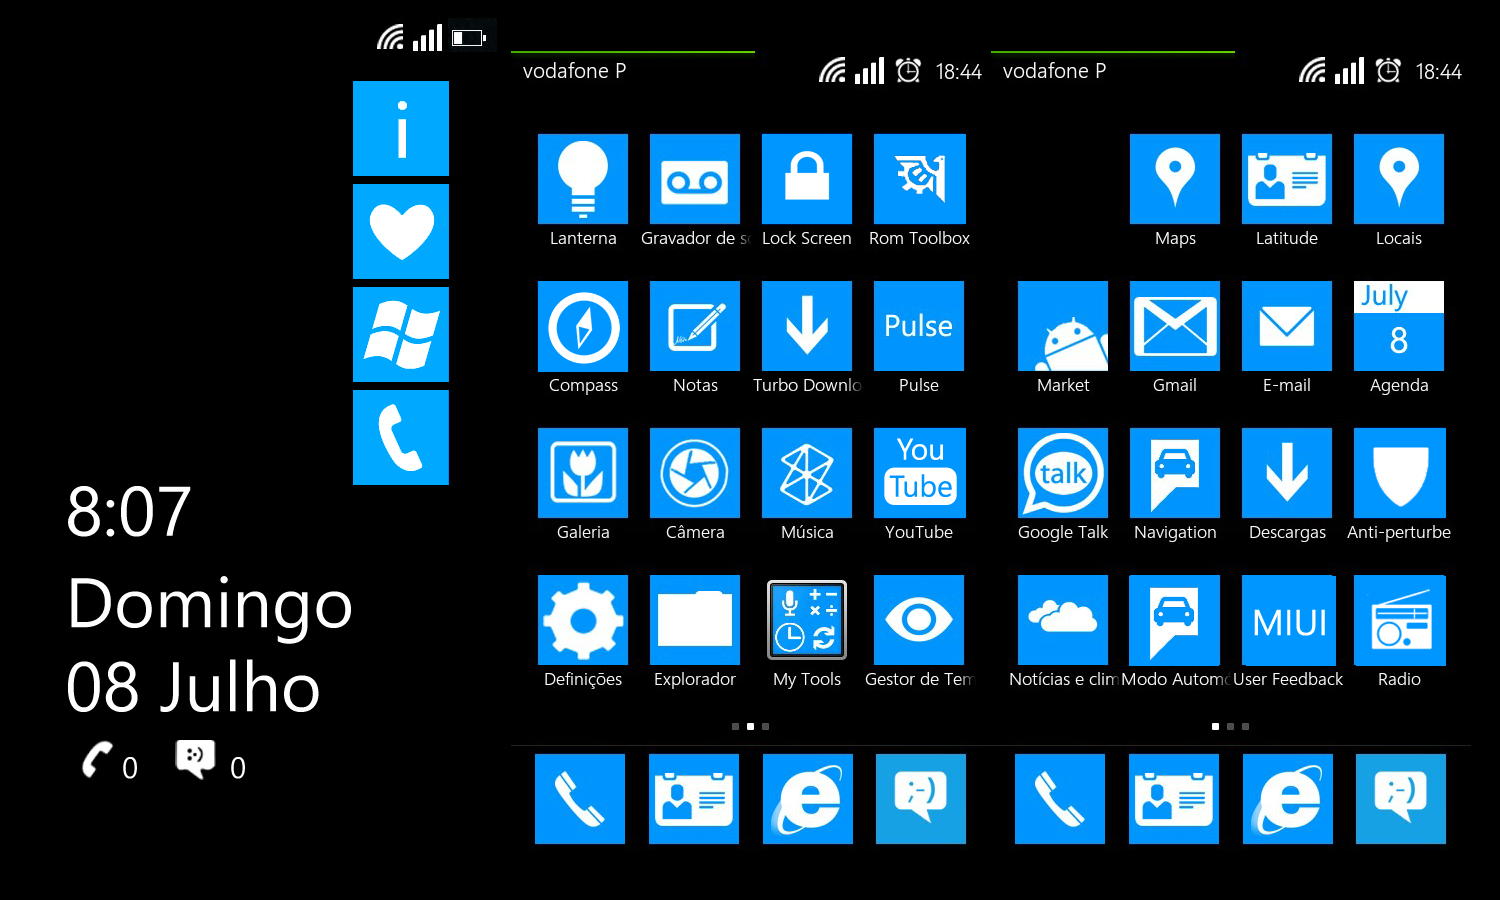 Dubakumetro Miui Theme Based On Wp7 By Dubaku On